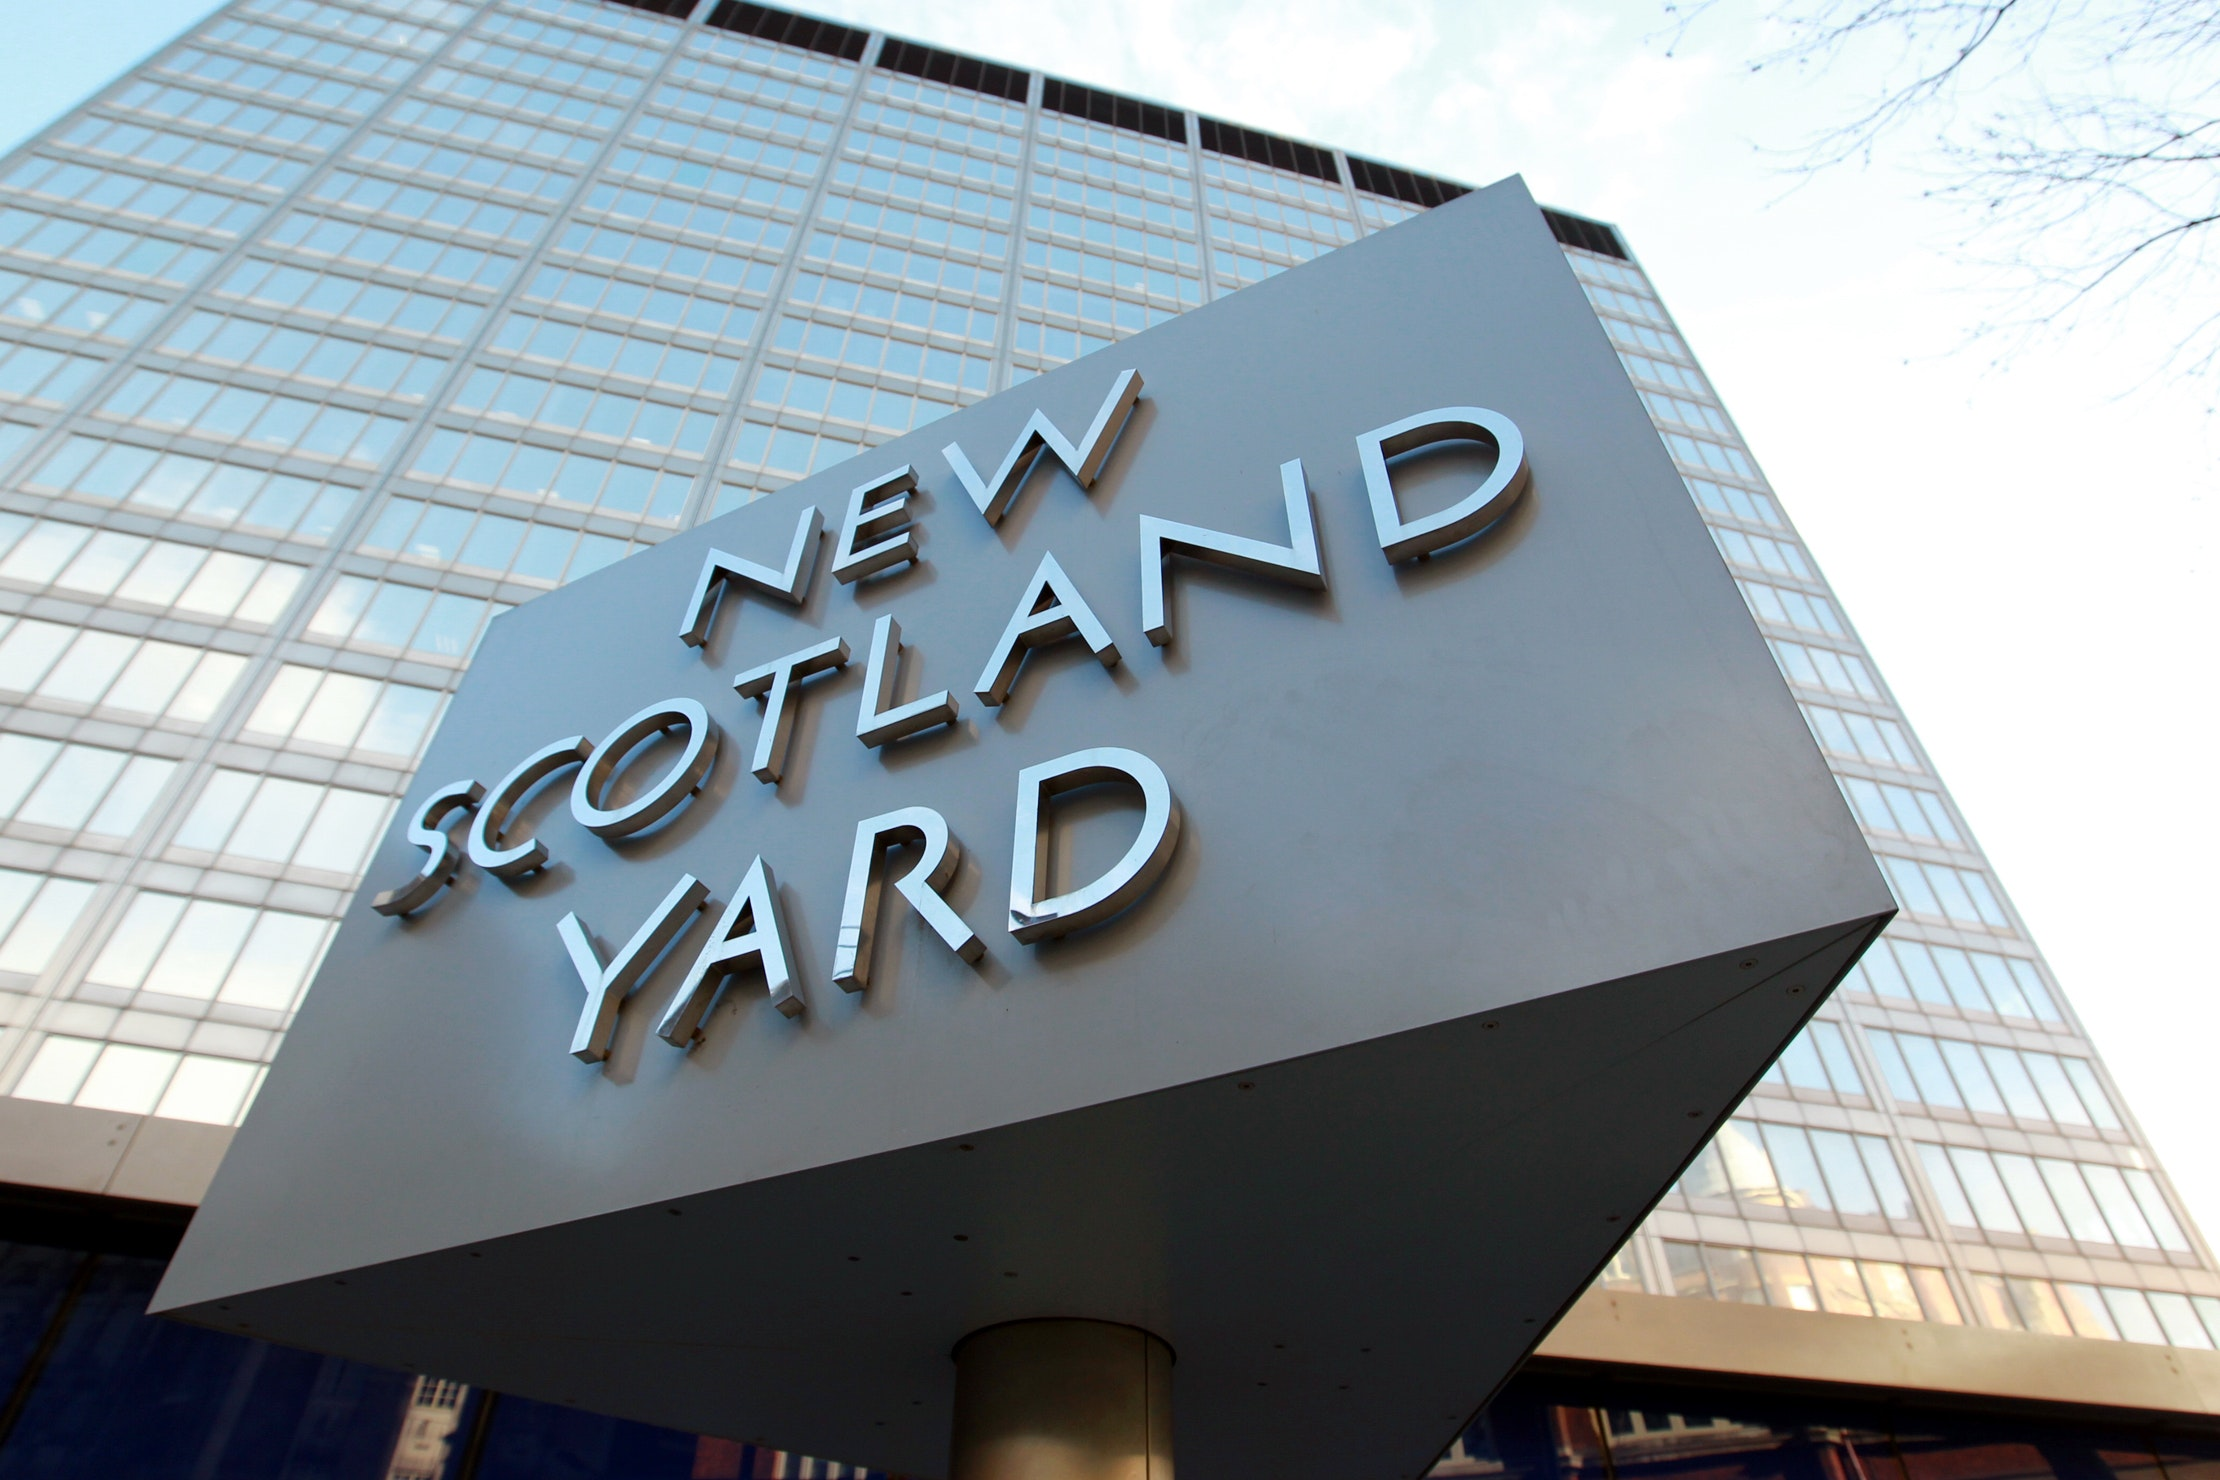 Glasgow teenager among two Scots charged for cyber attack on Metropolitan Police